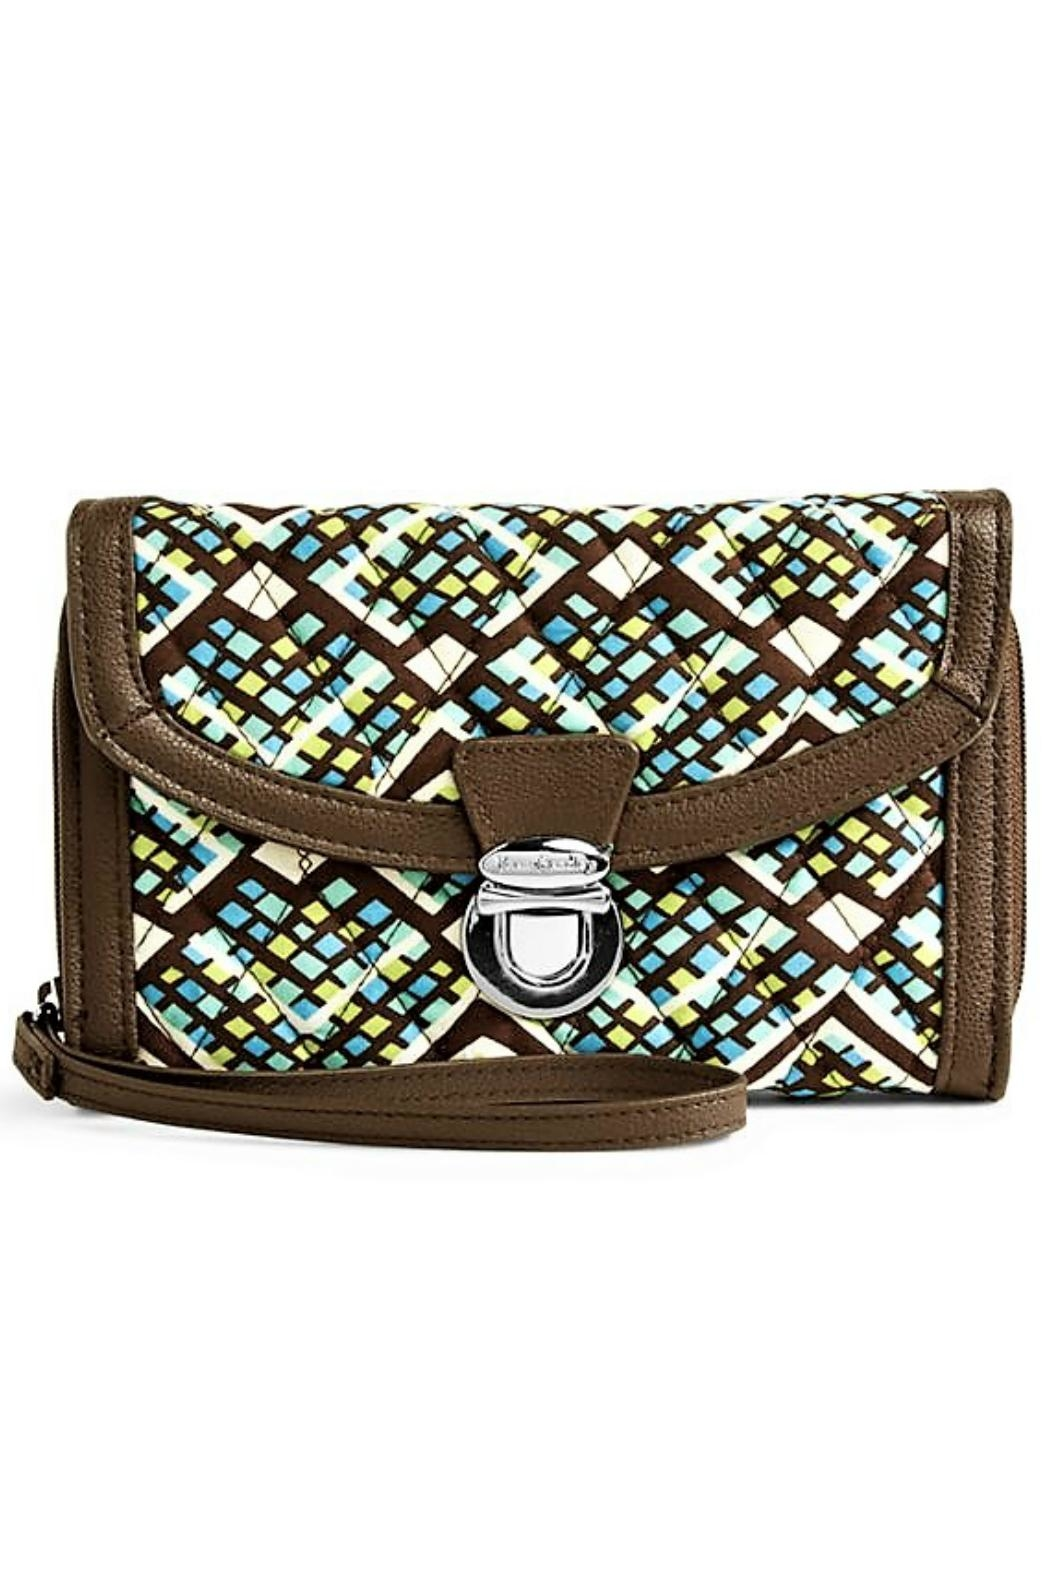 Vera Bradley Rain Forest Wristlet from Kentucky by Mimi s Gift ... 30221ae19a